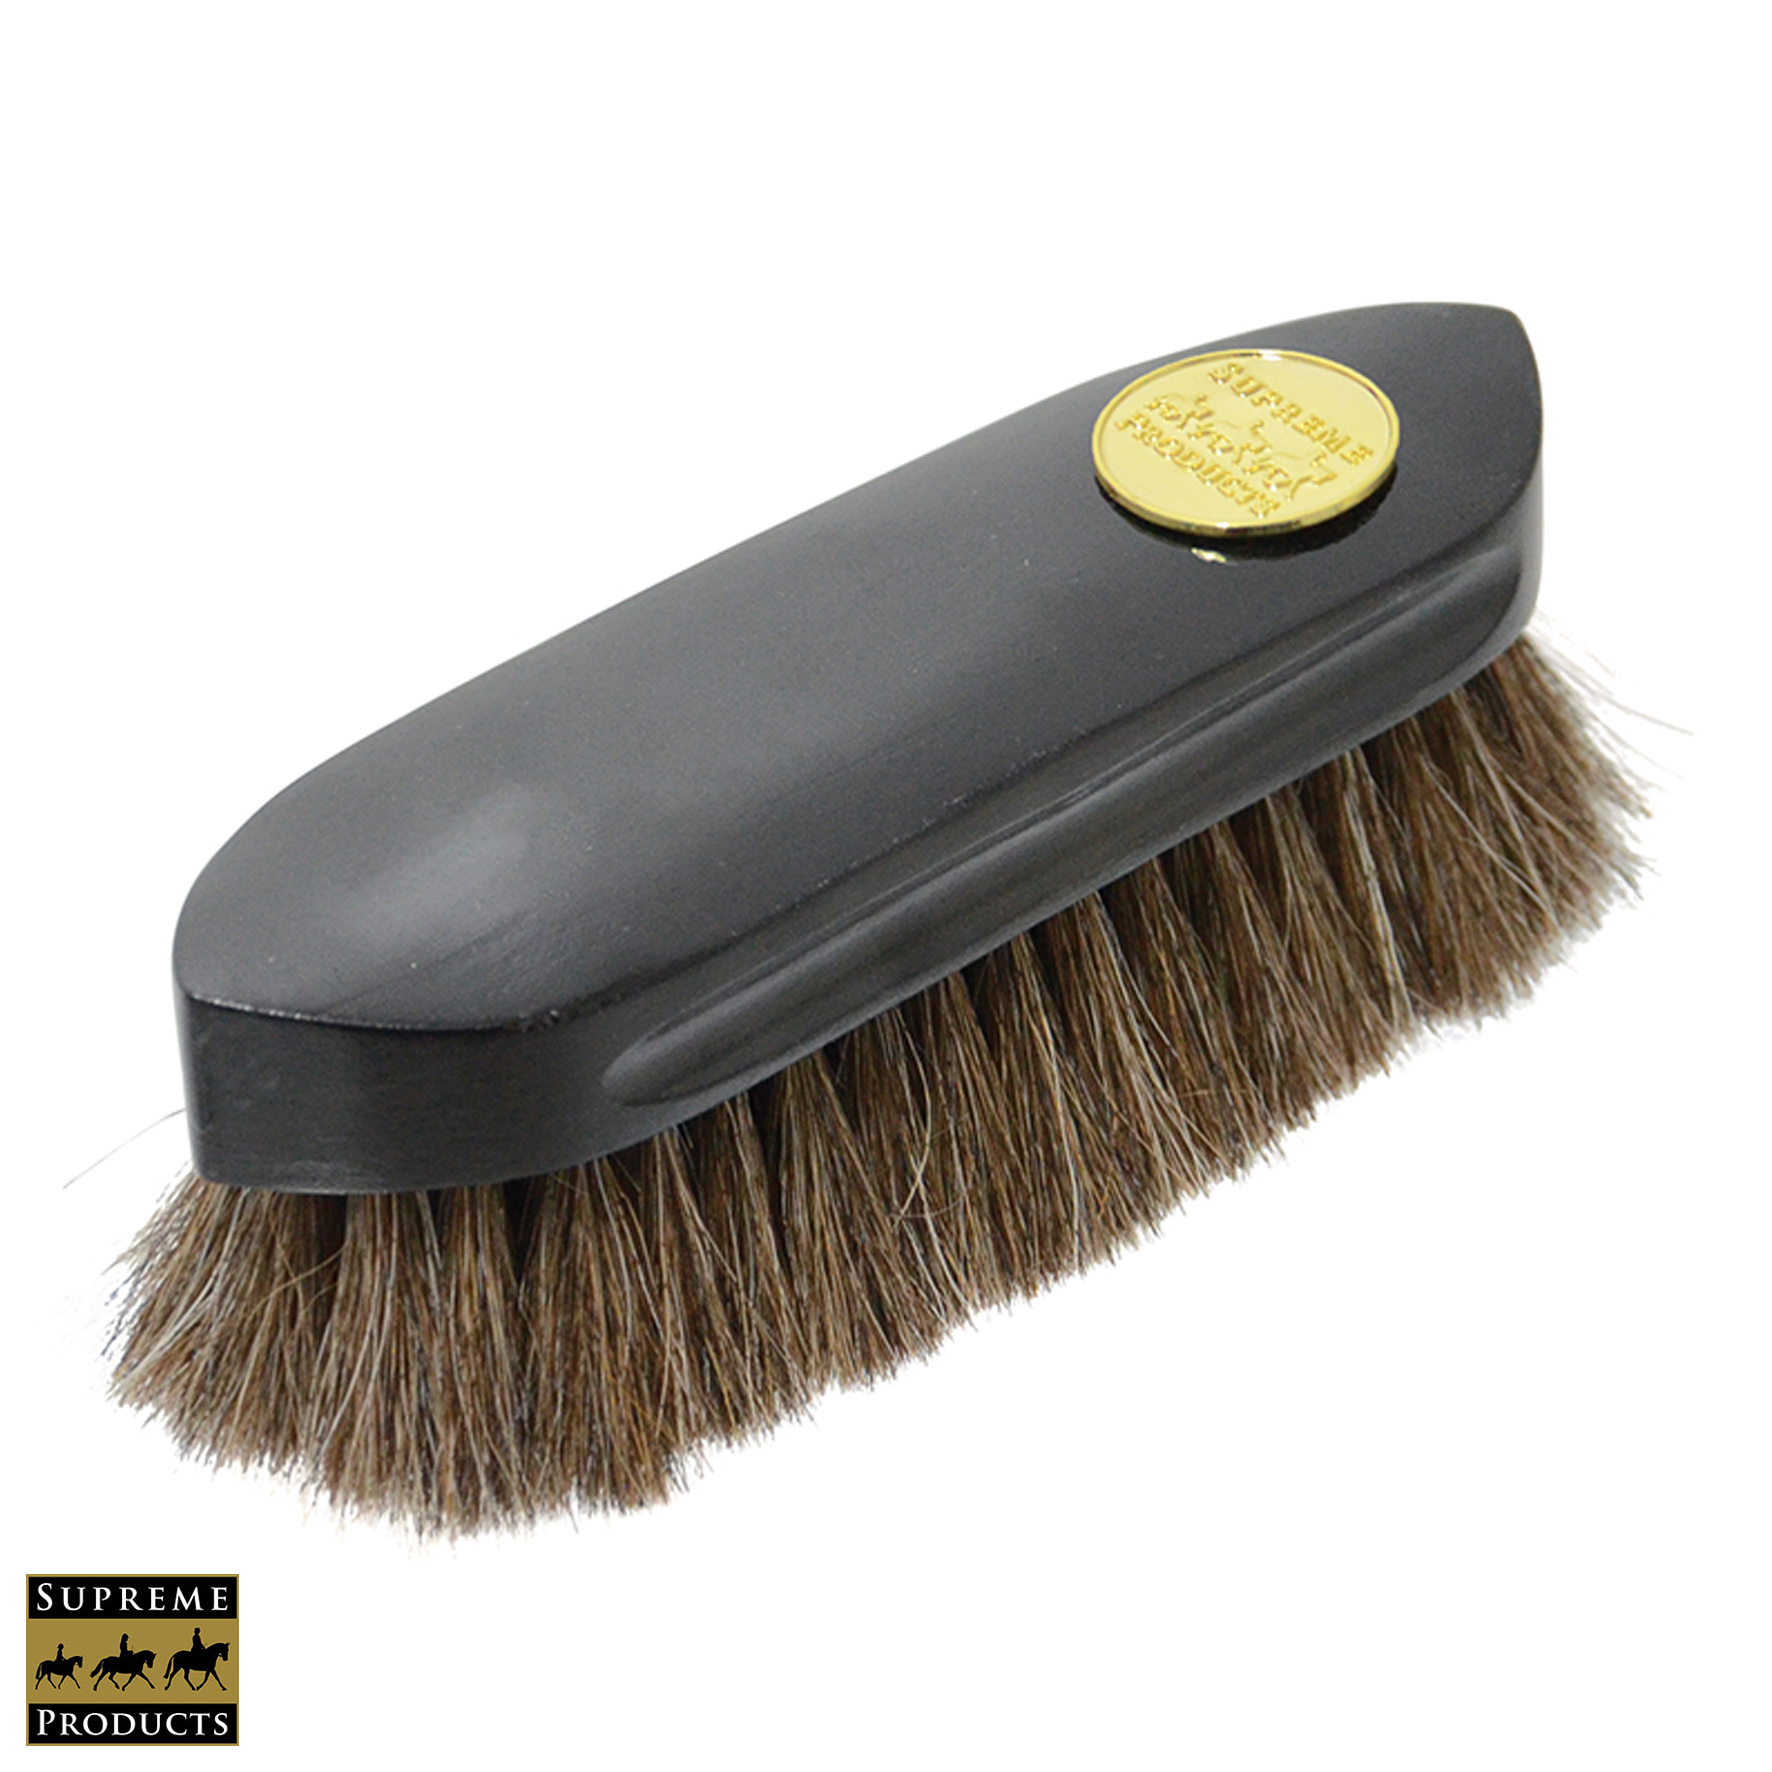 Supreme Products Perfection Horsehair Dandy Brush